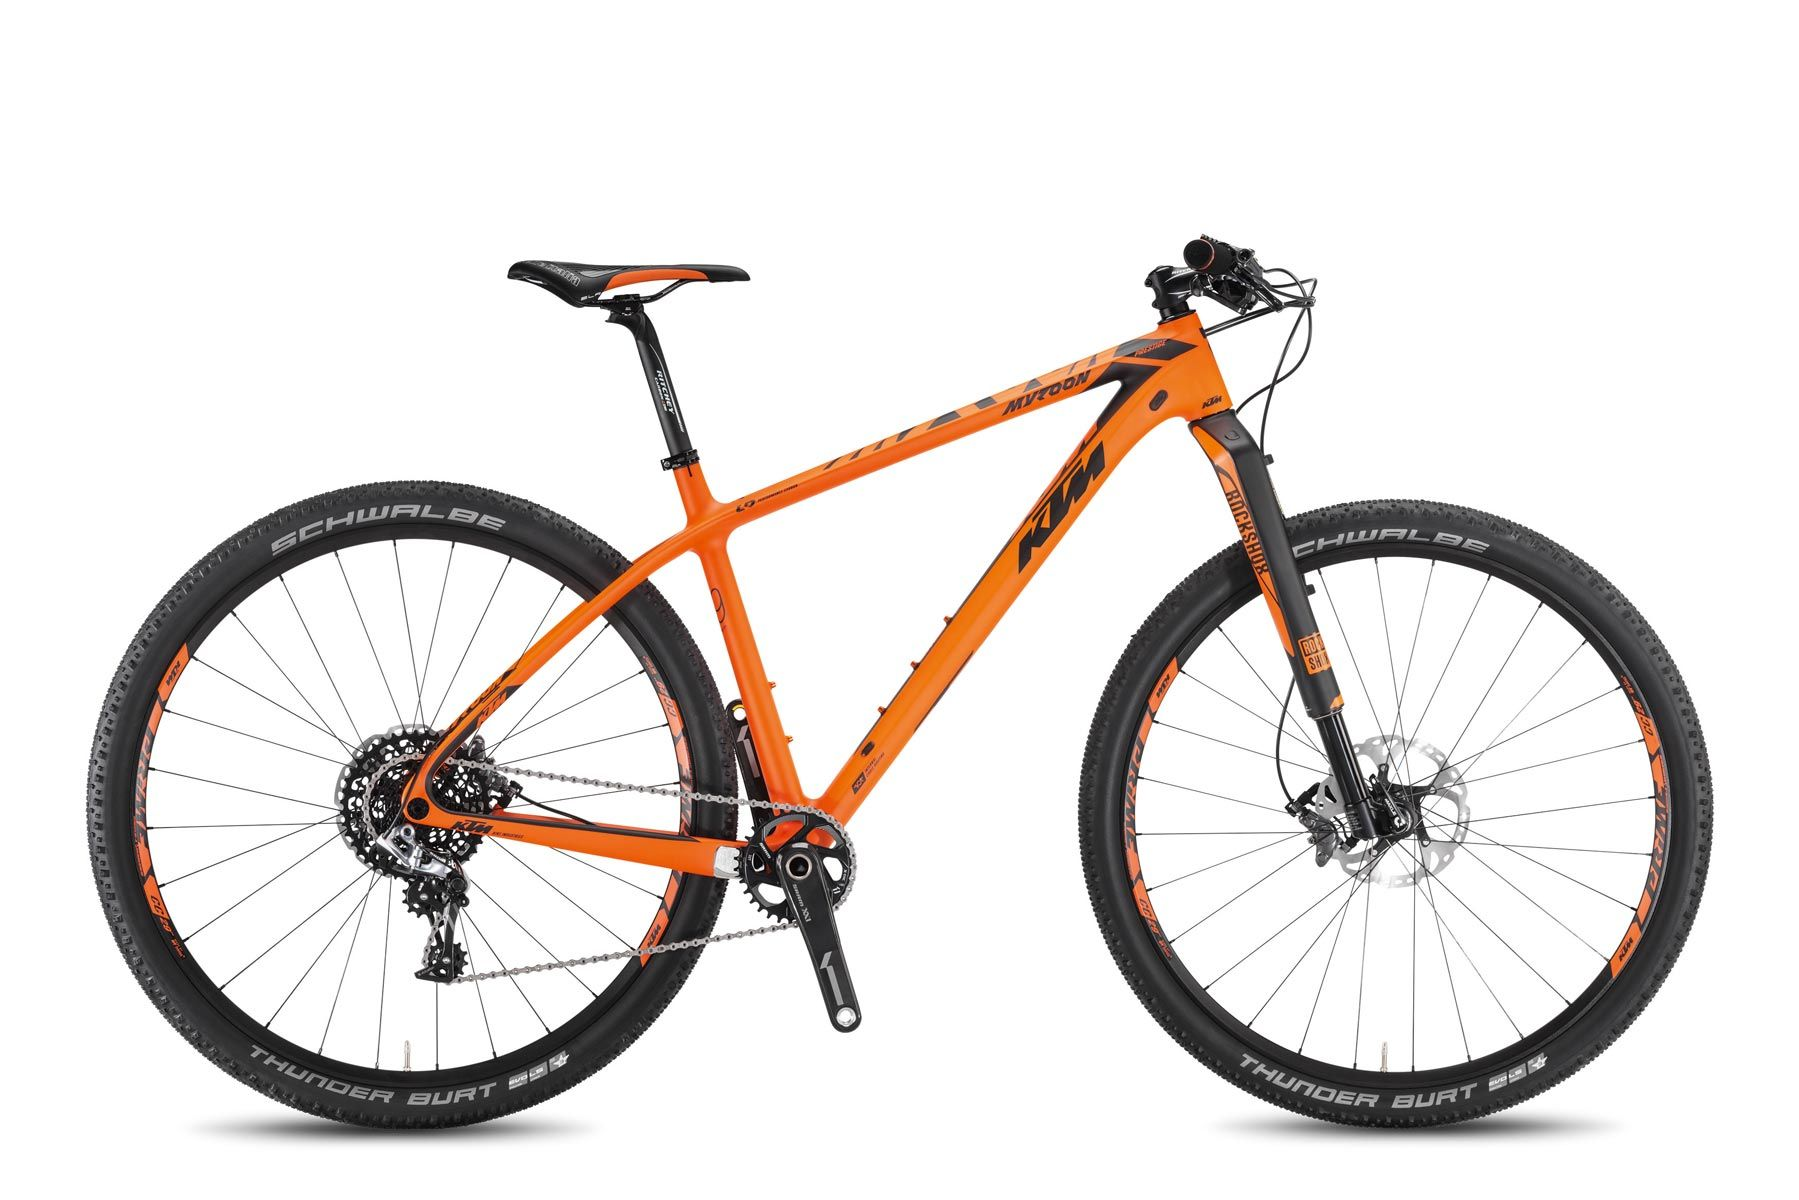 Hardtail Ktm Bike Industries With Images Ktm Mtb Bicycle